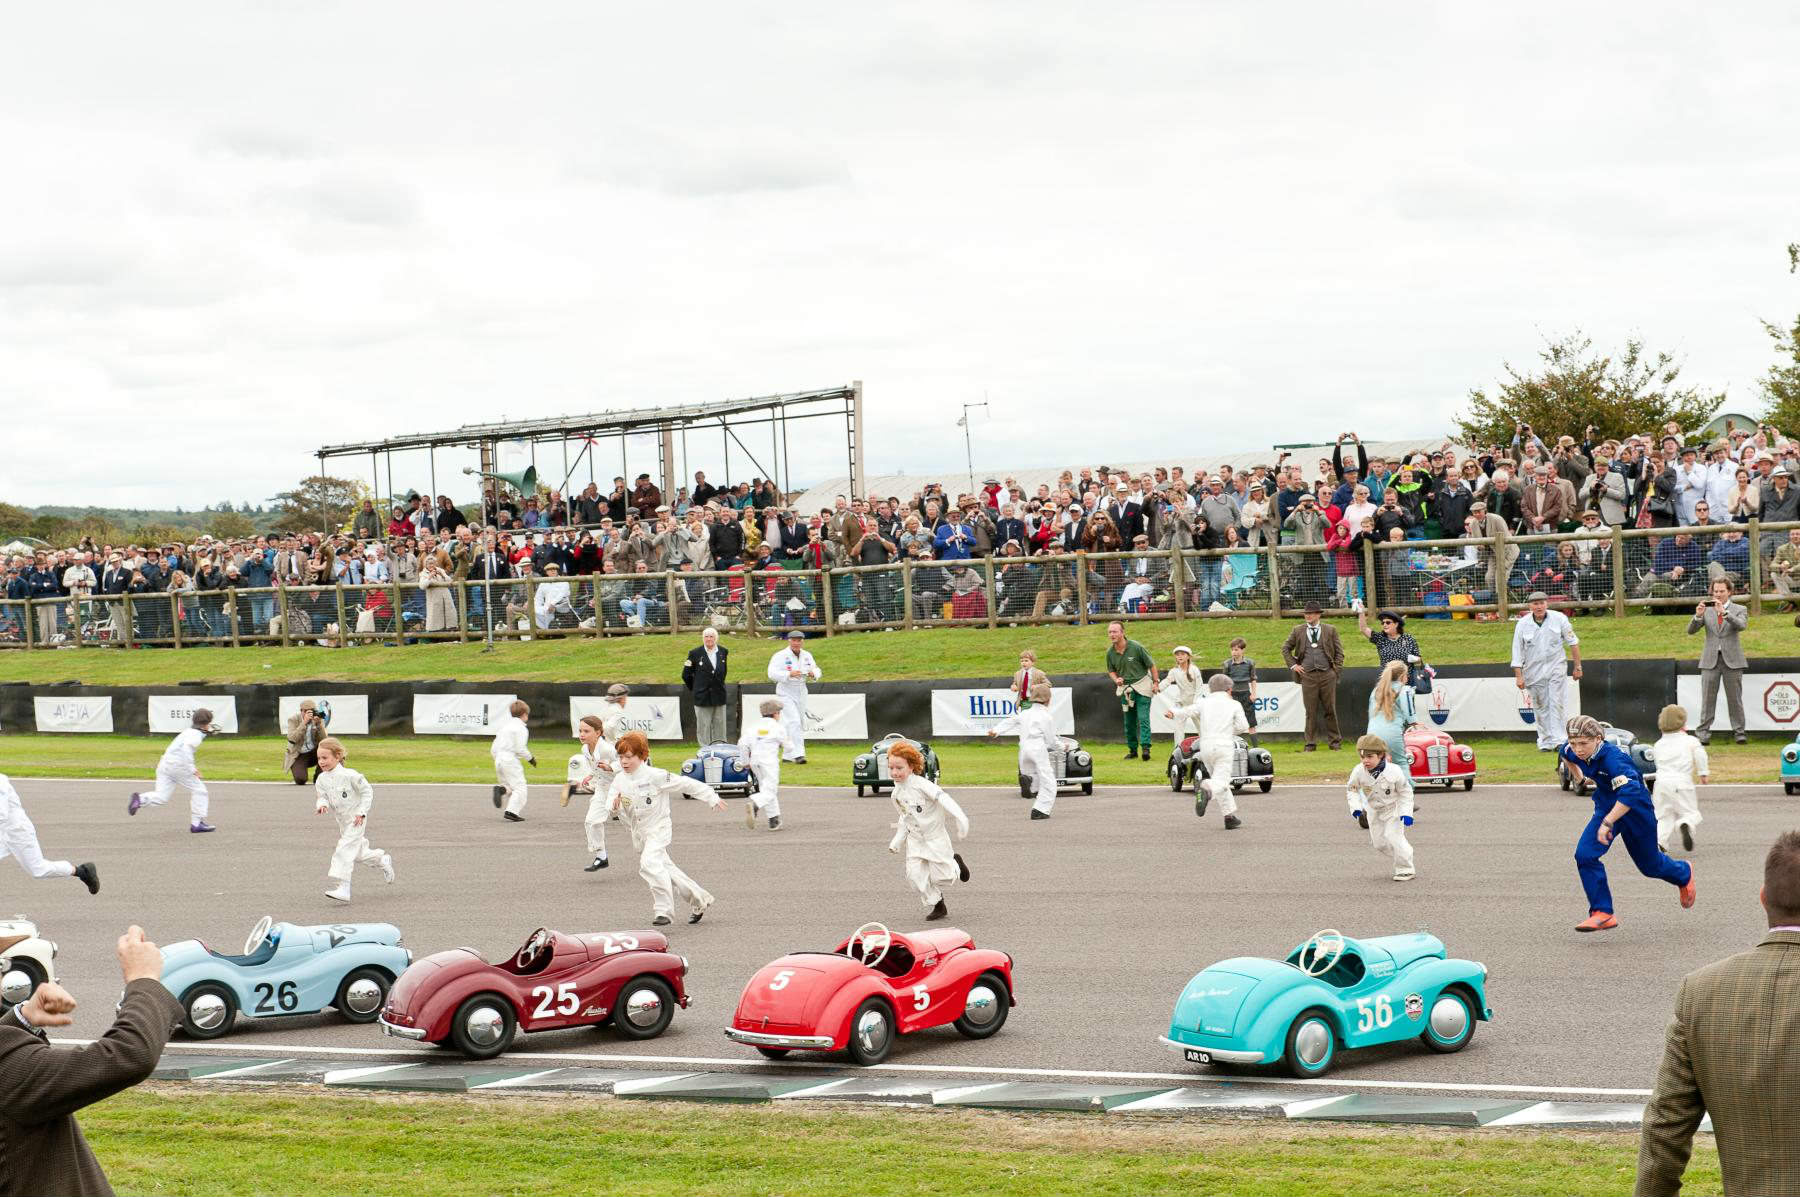 image of a kids car race at goodwood revival festival 2017